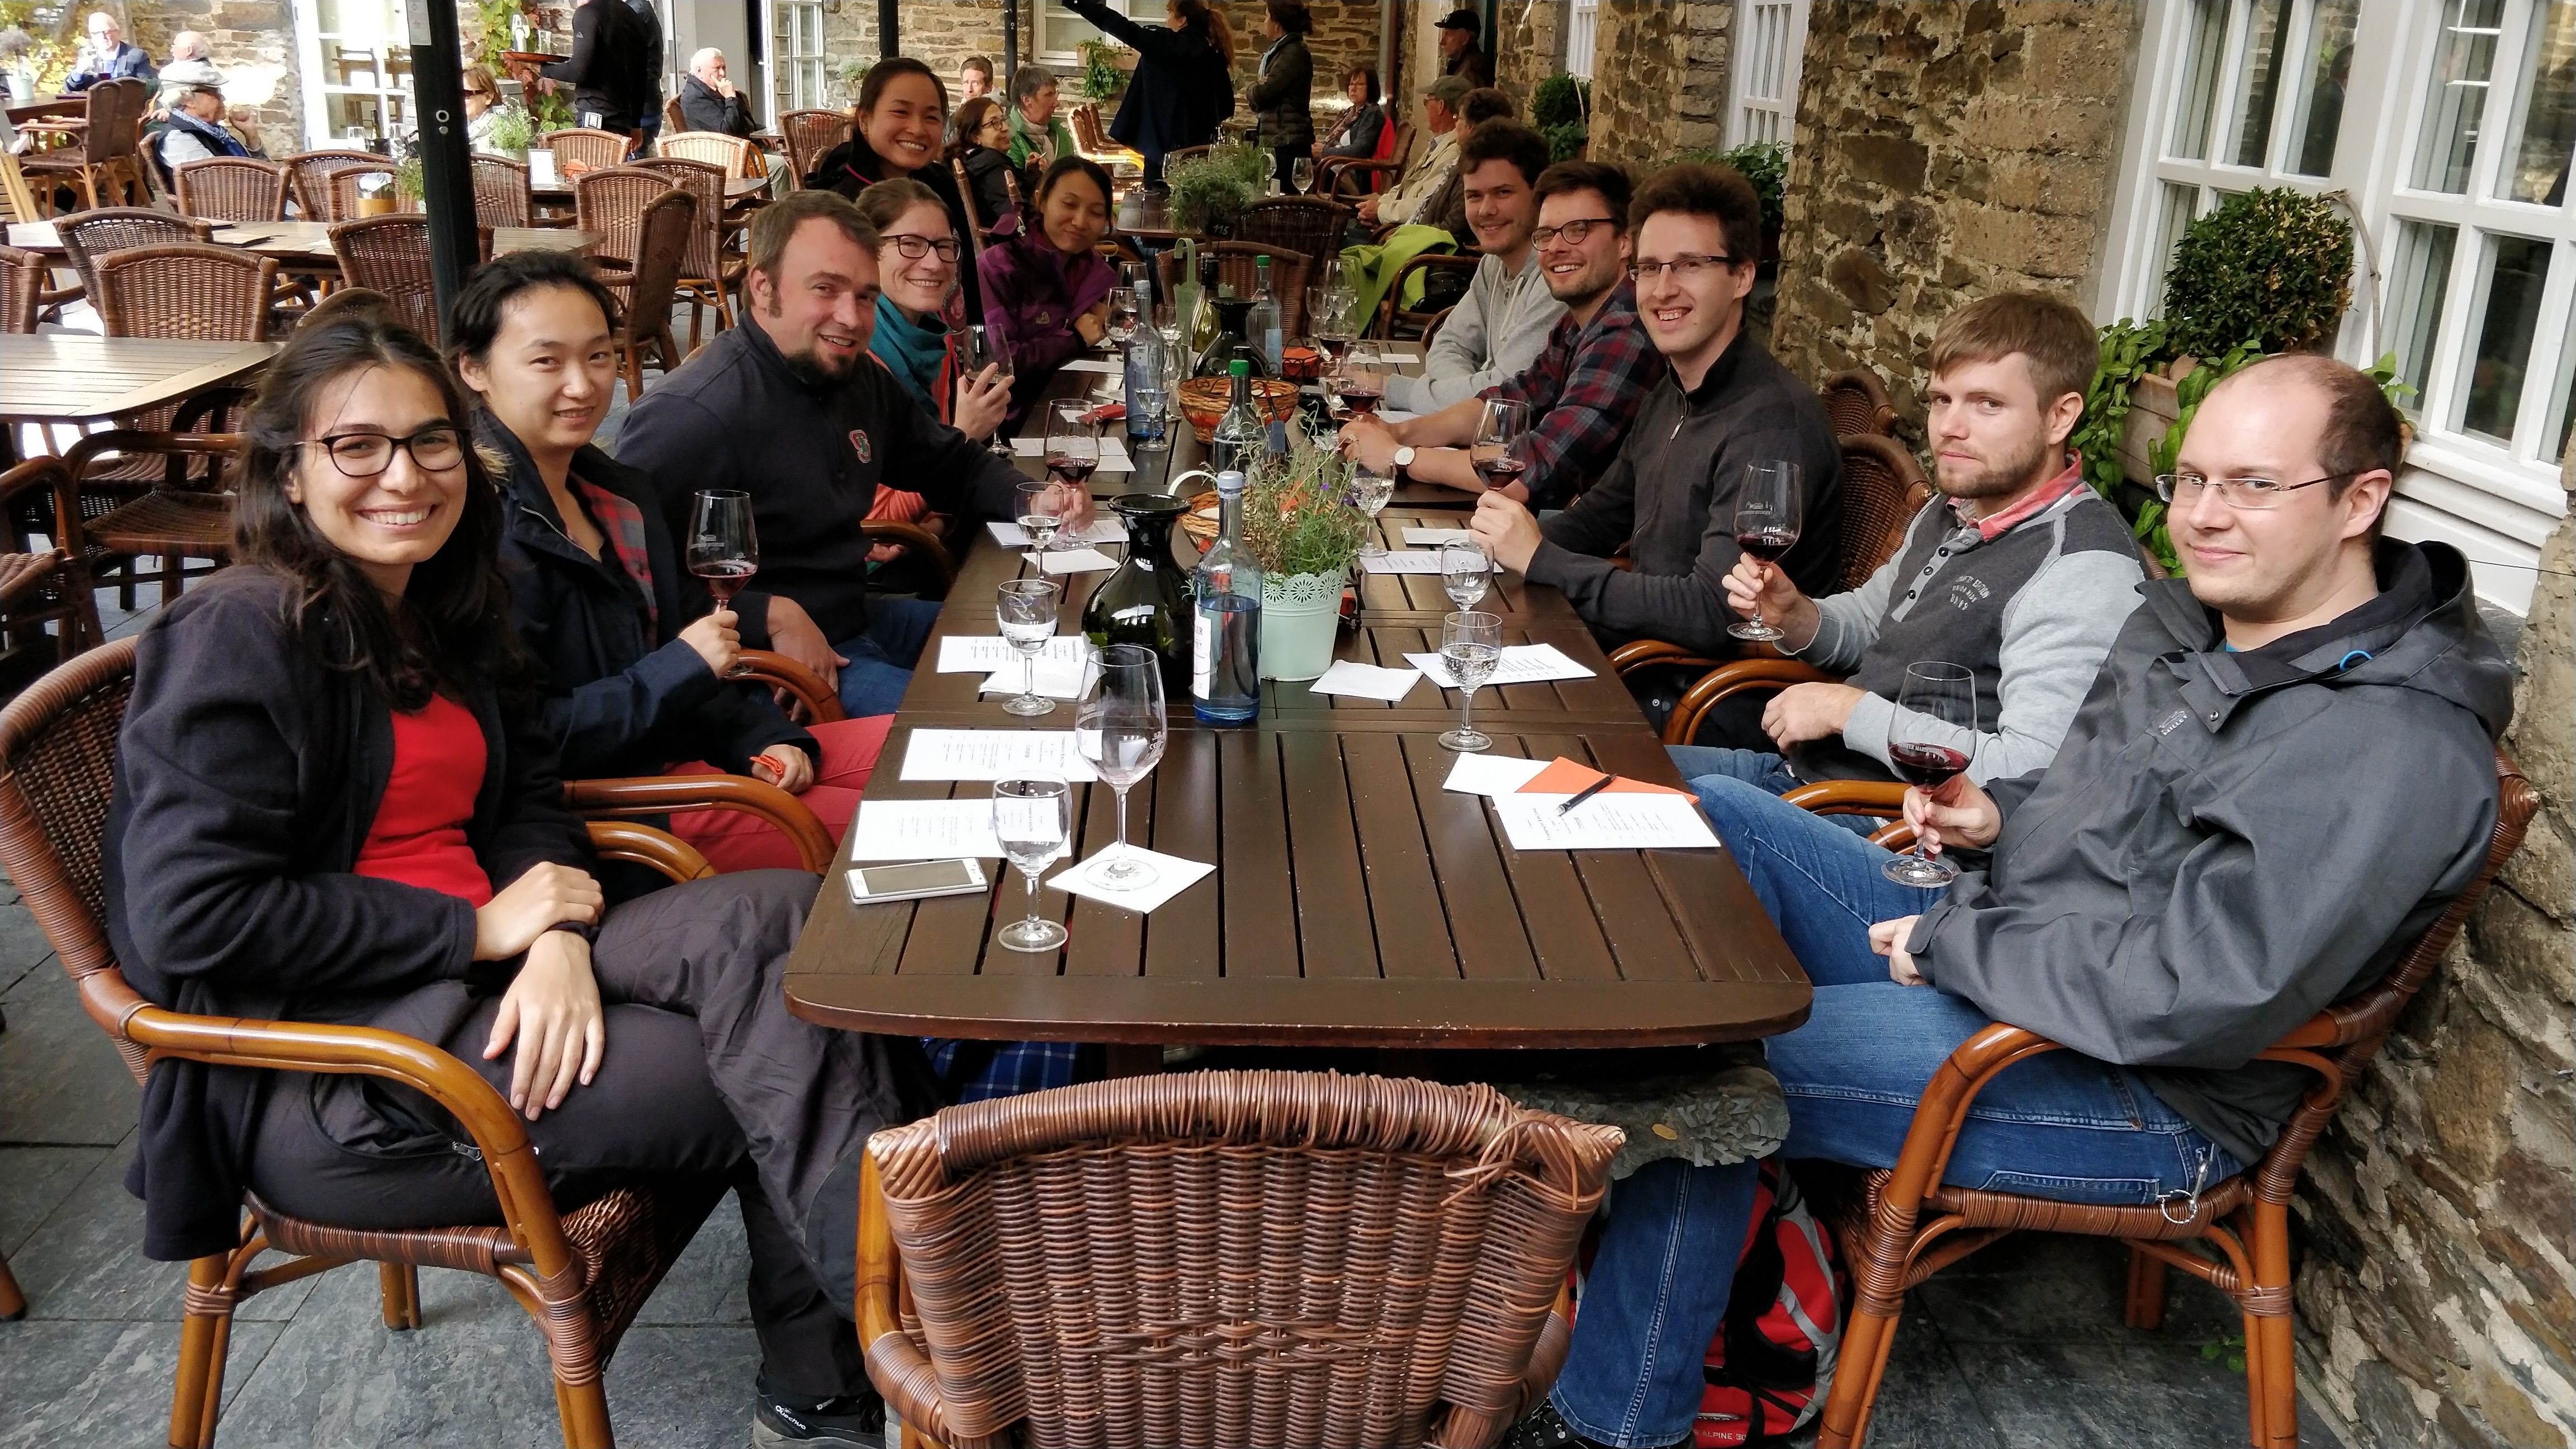 Wine tasting at Kloster Marienthal